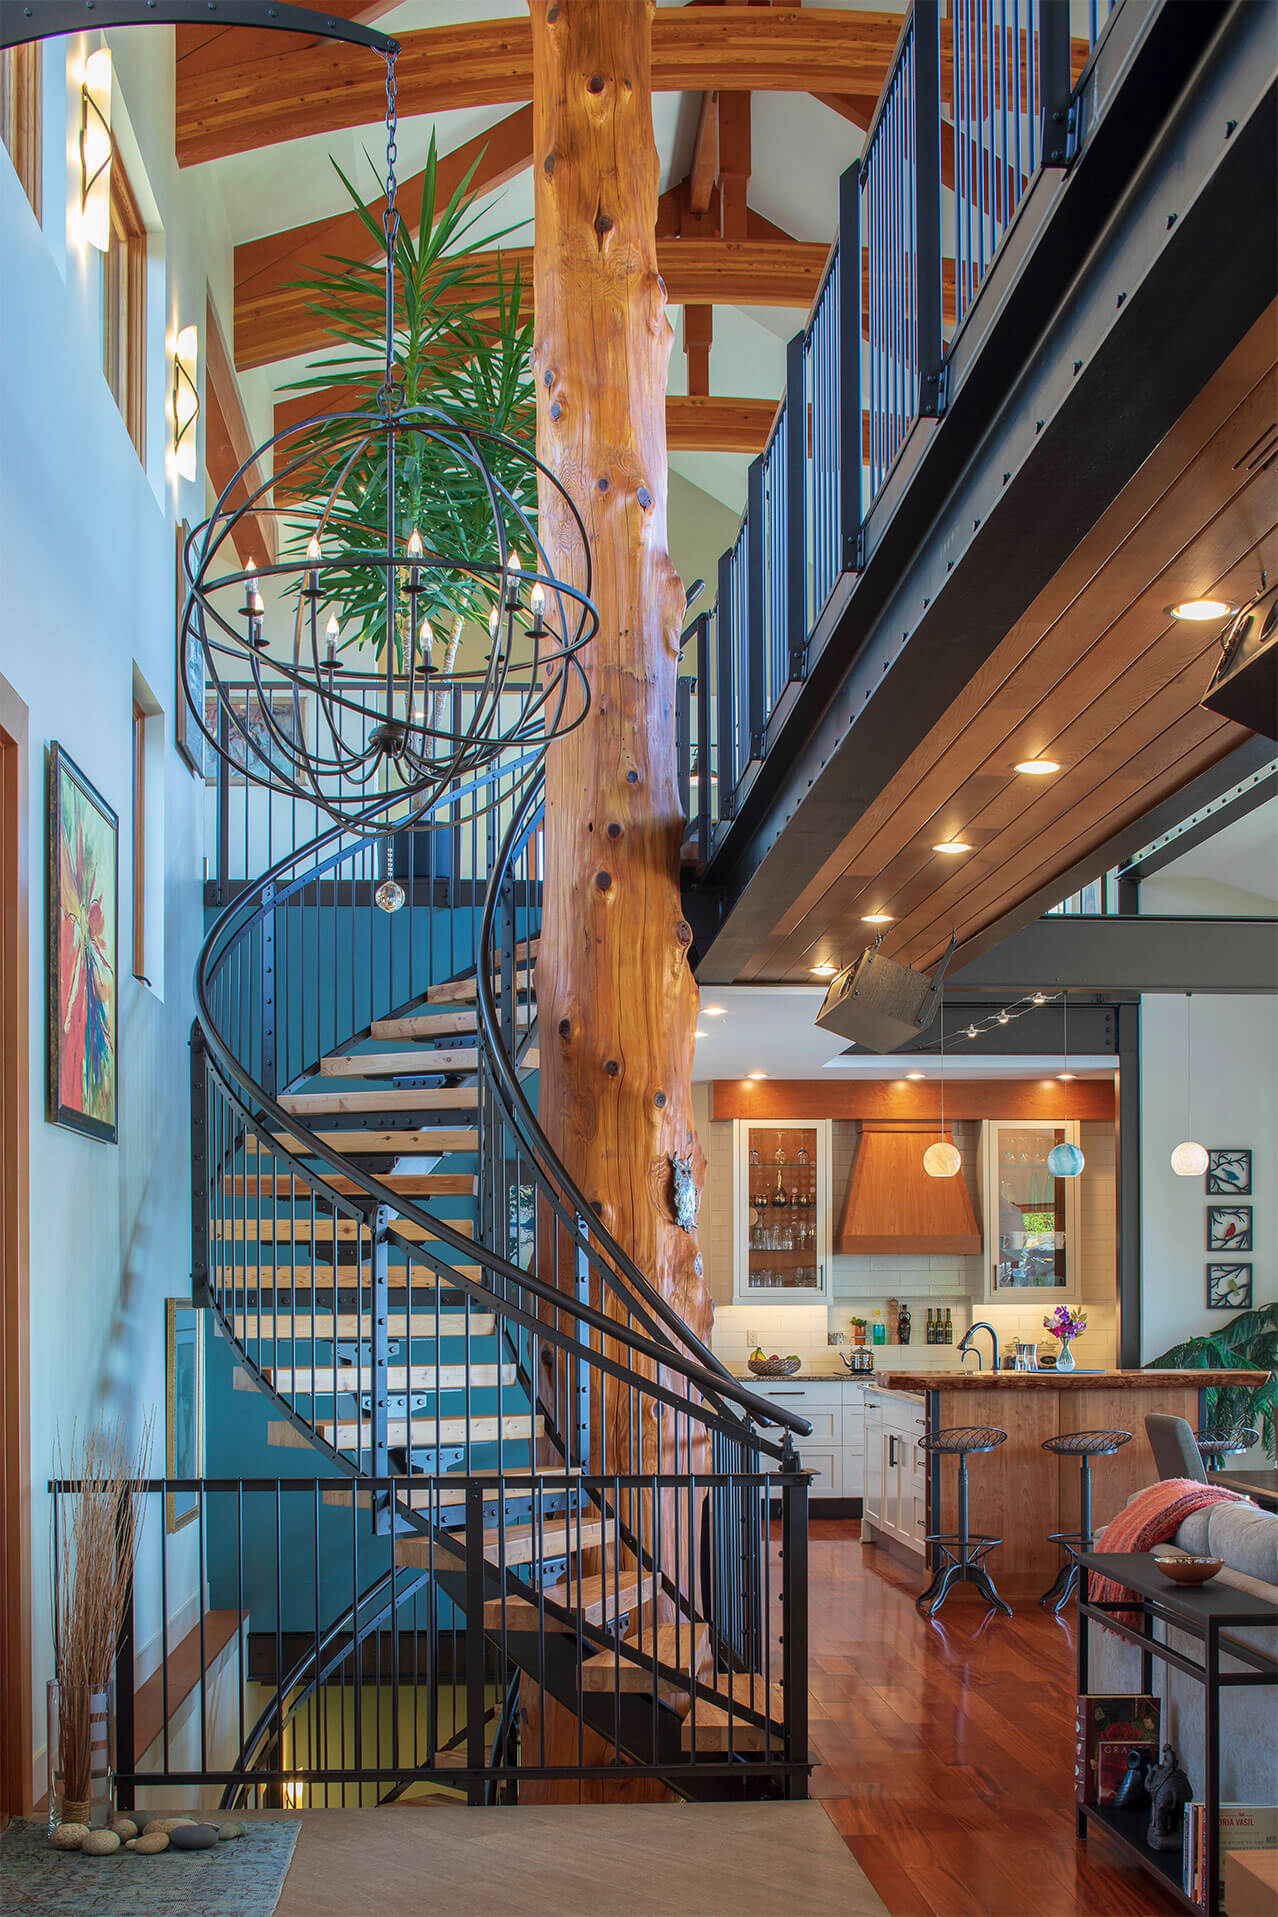 Spiraling staircase around reclaimed tree with lighting fixtures